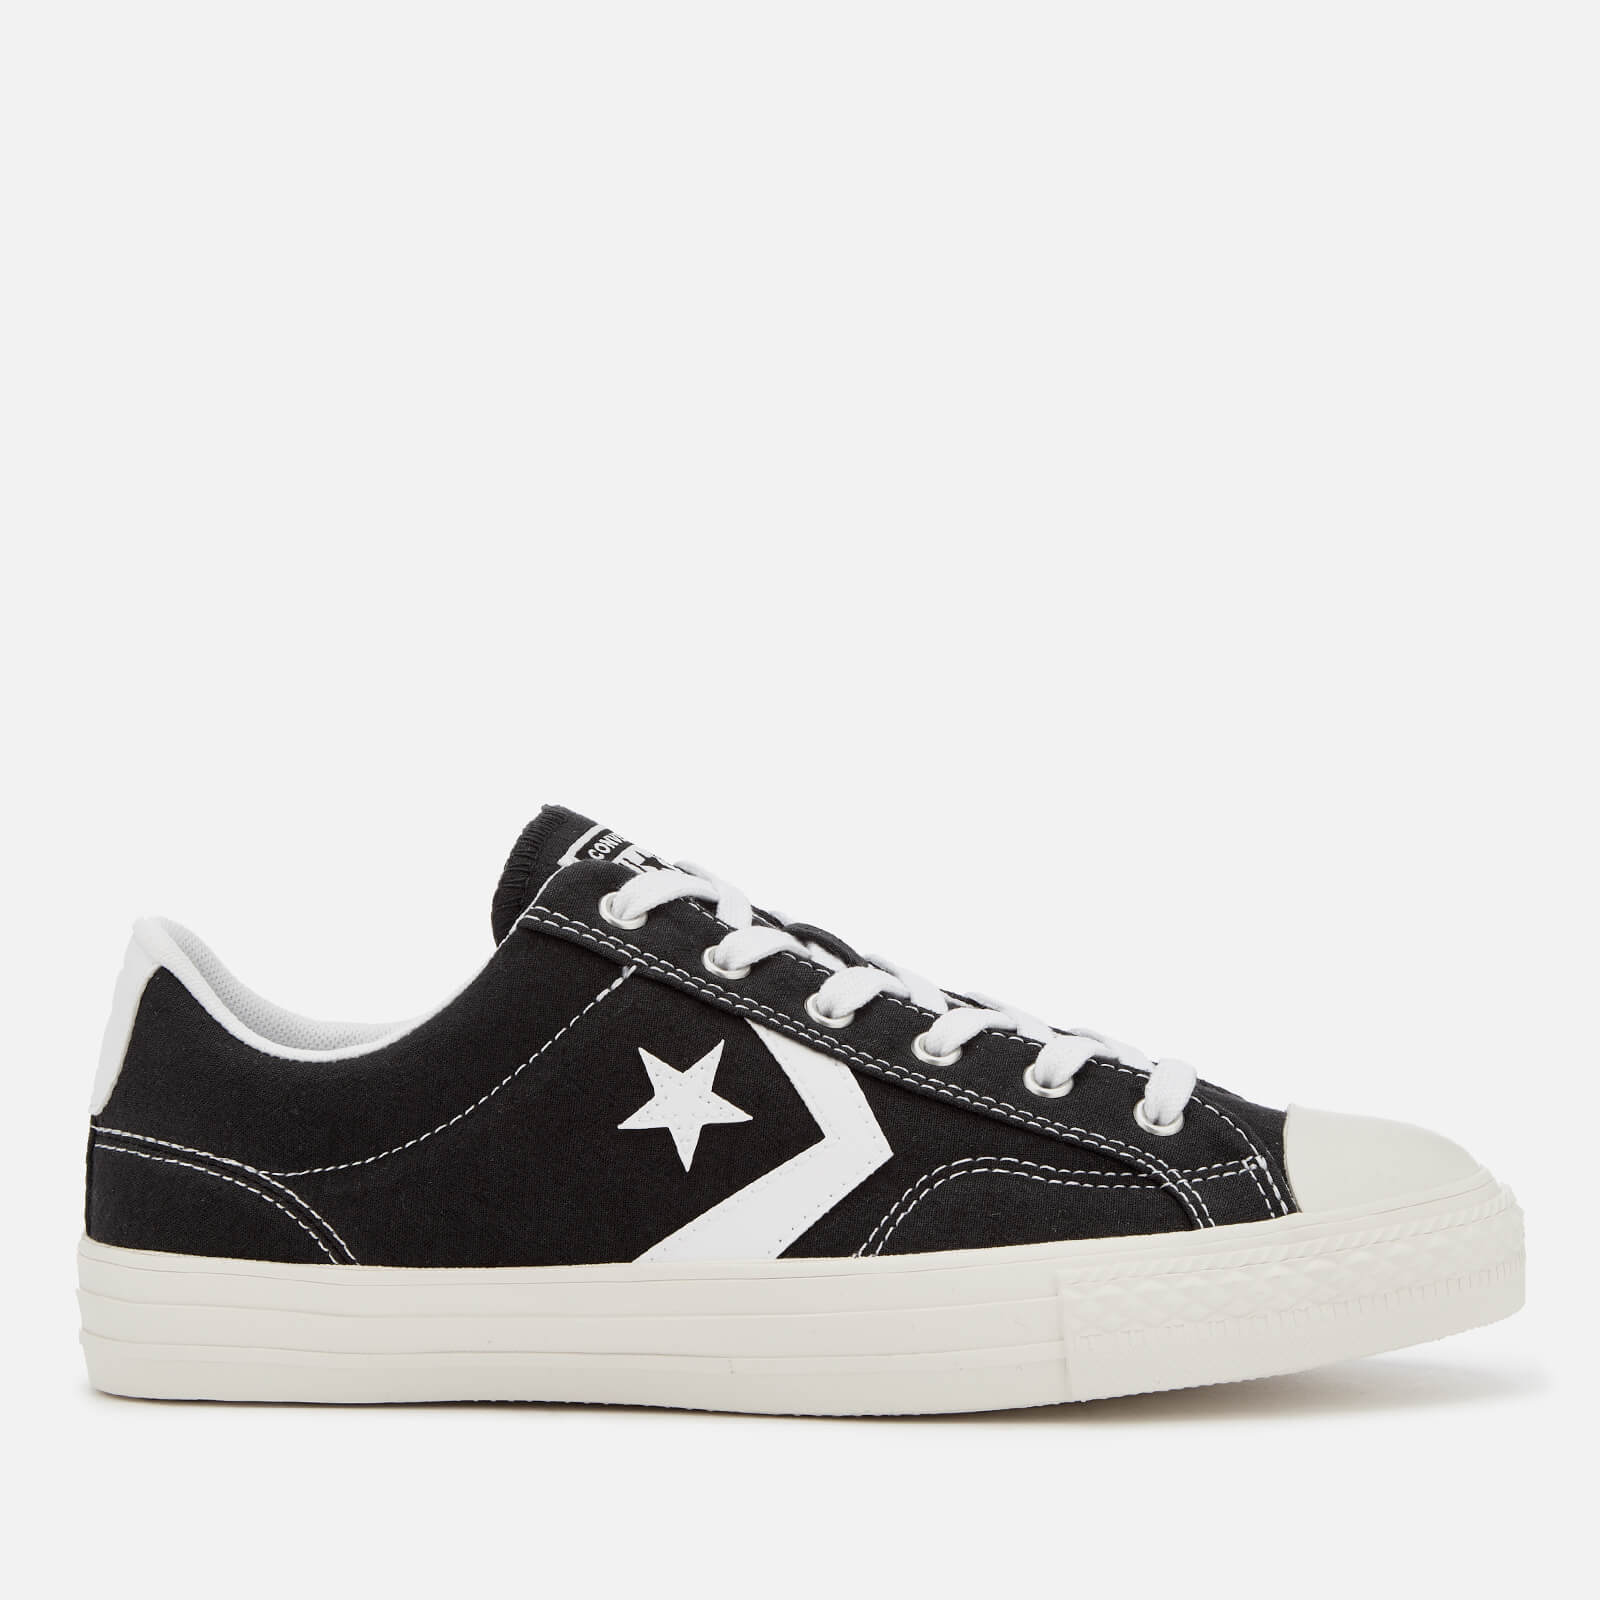 02fd05c1790256 Converse Men s Star Player Ox Trainers - Black White - Free UK ...